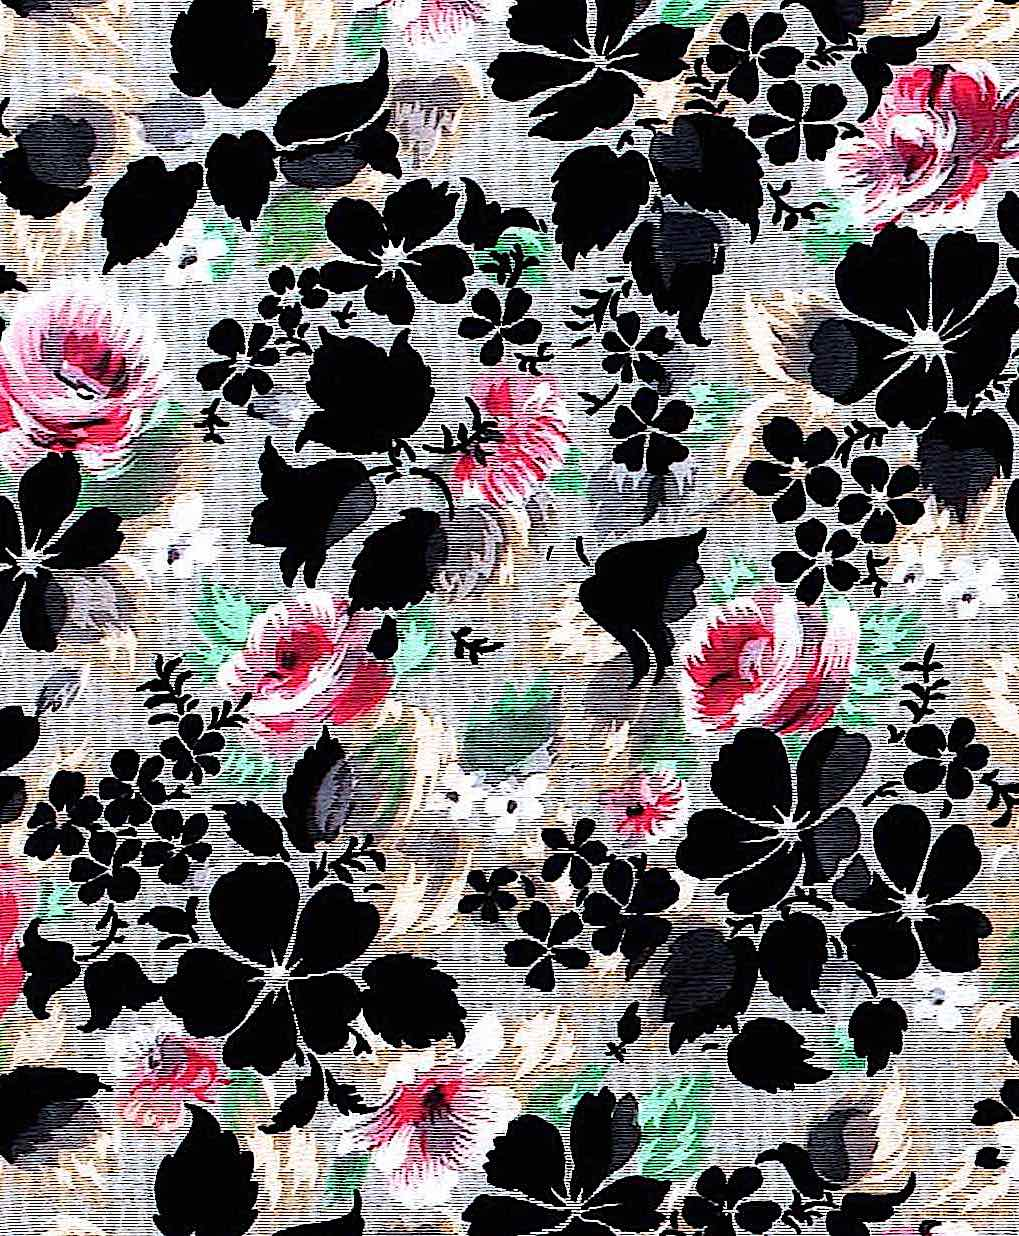 1895 French silk with black fowers